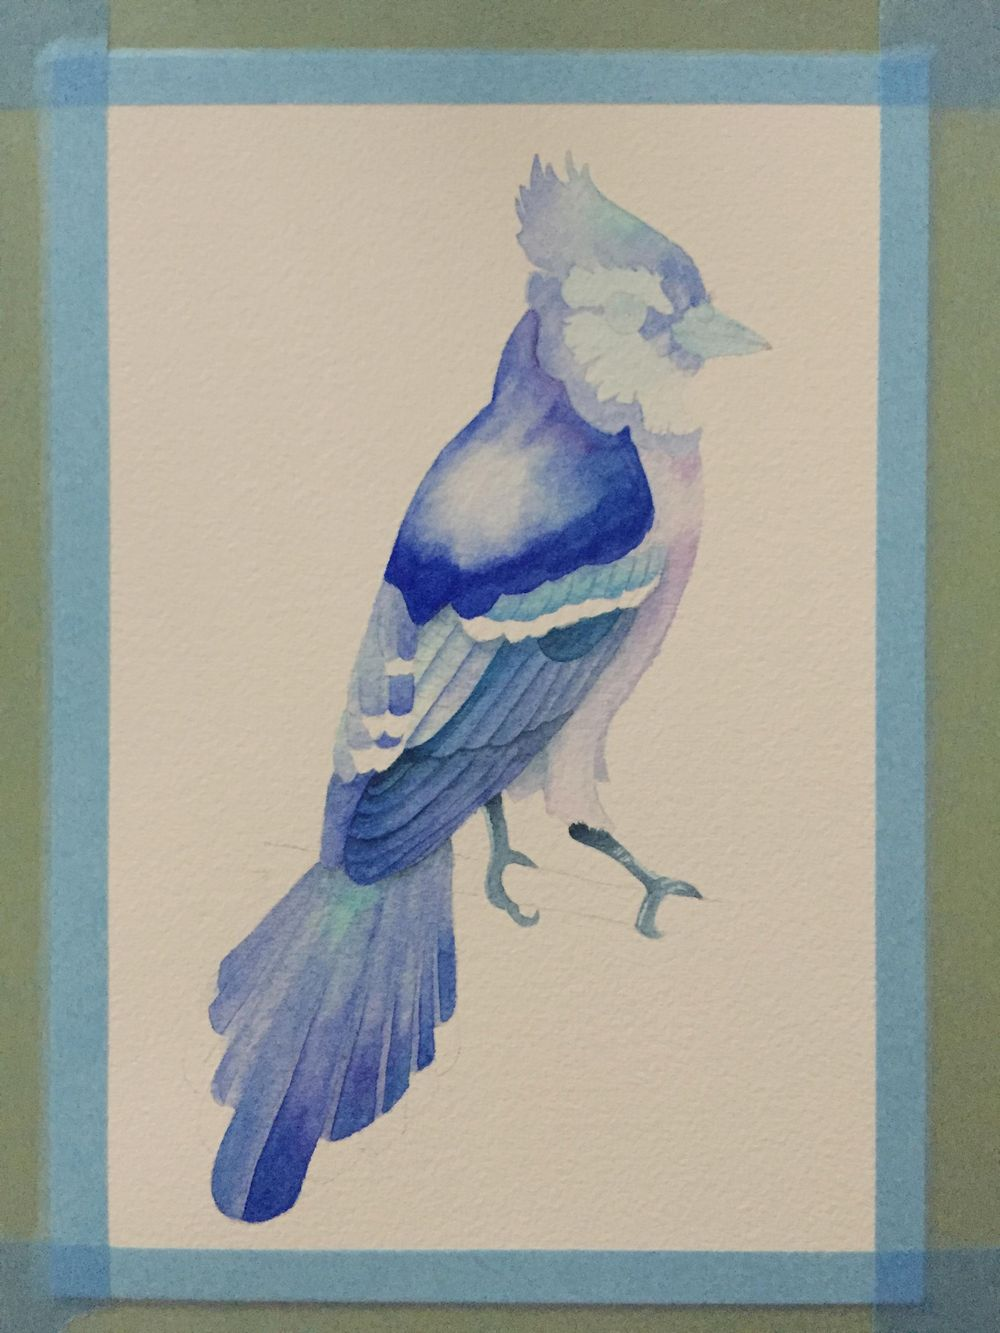 Watercolour Blue Jay - image 3 - student project